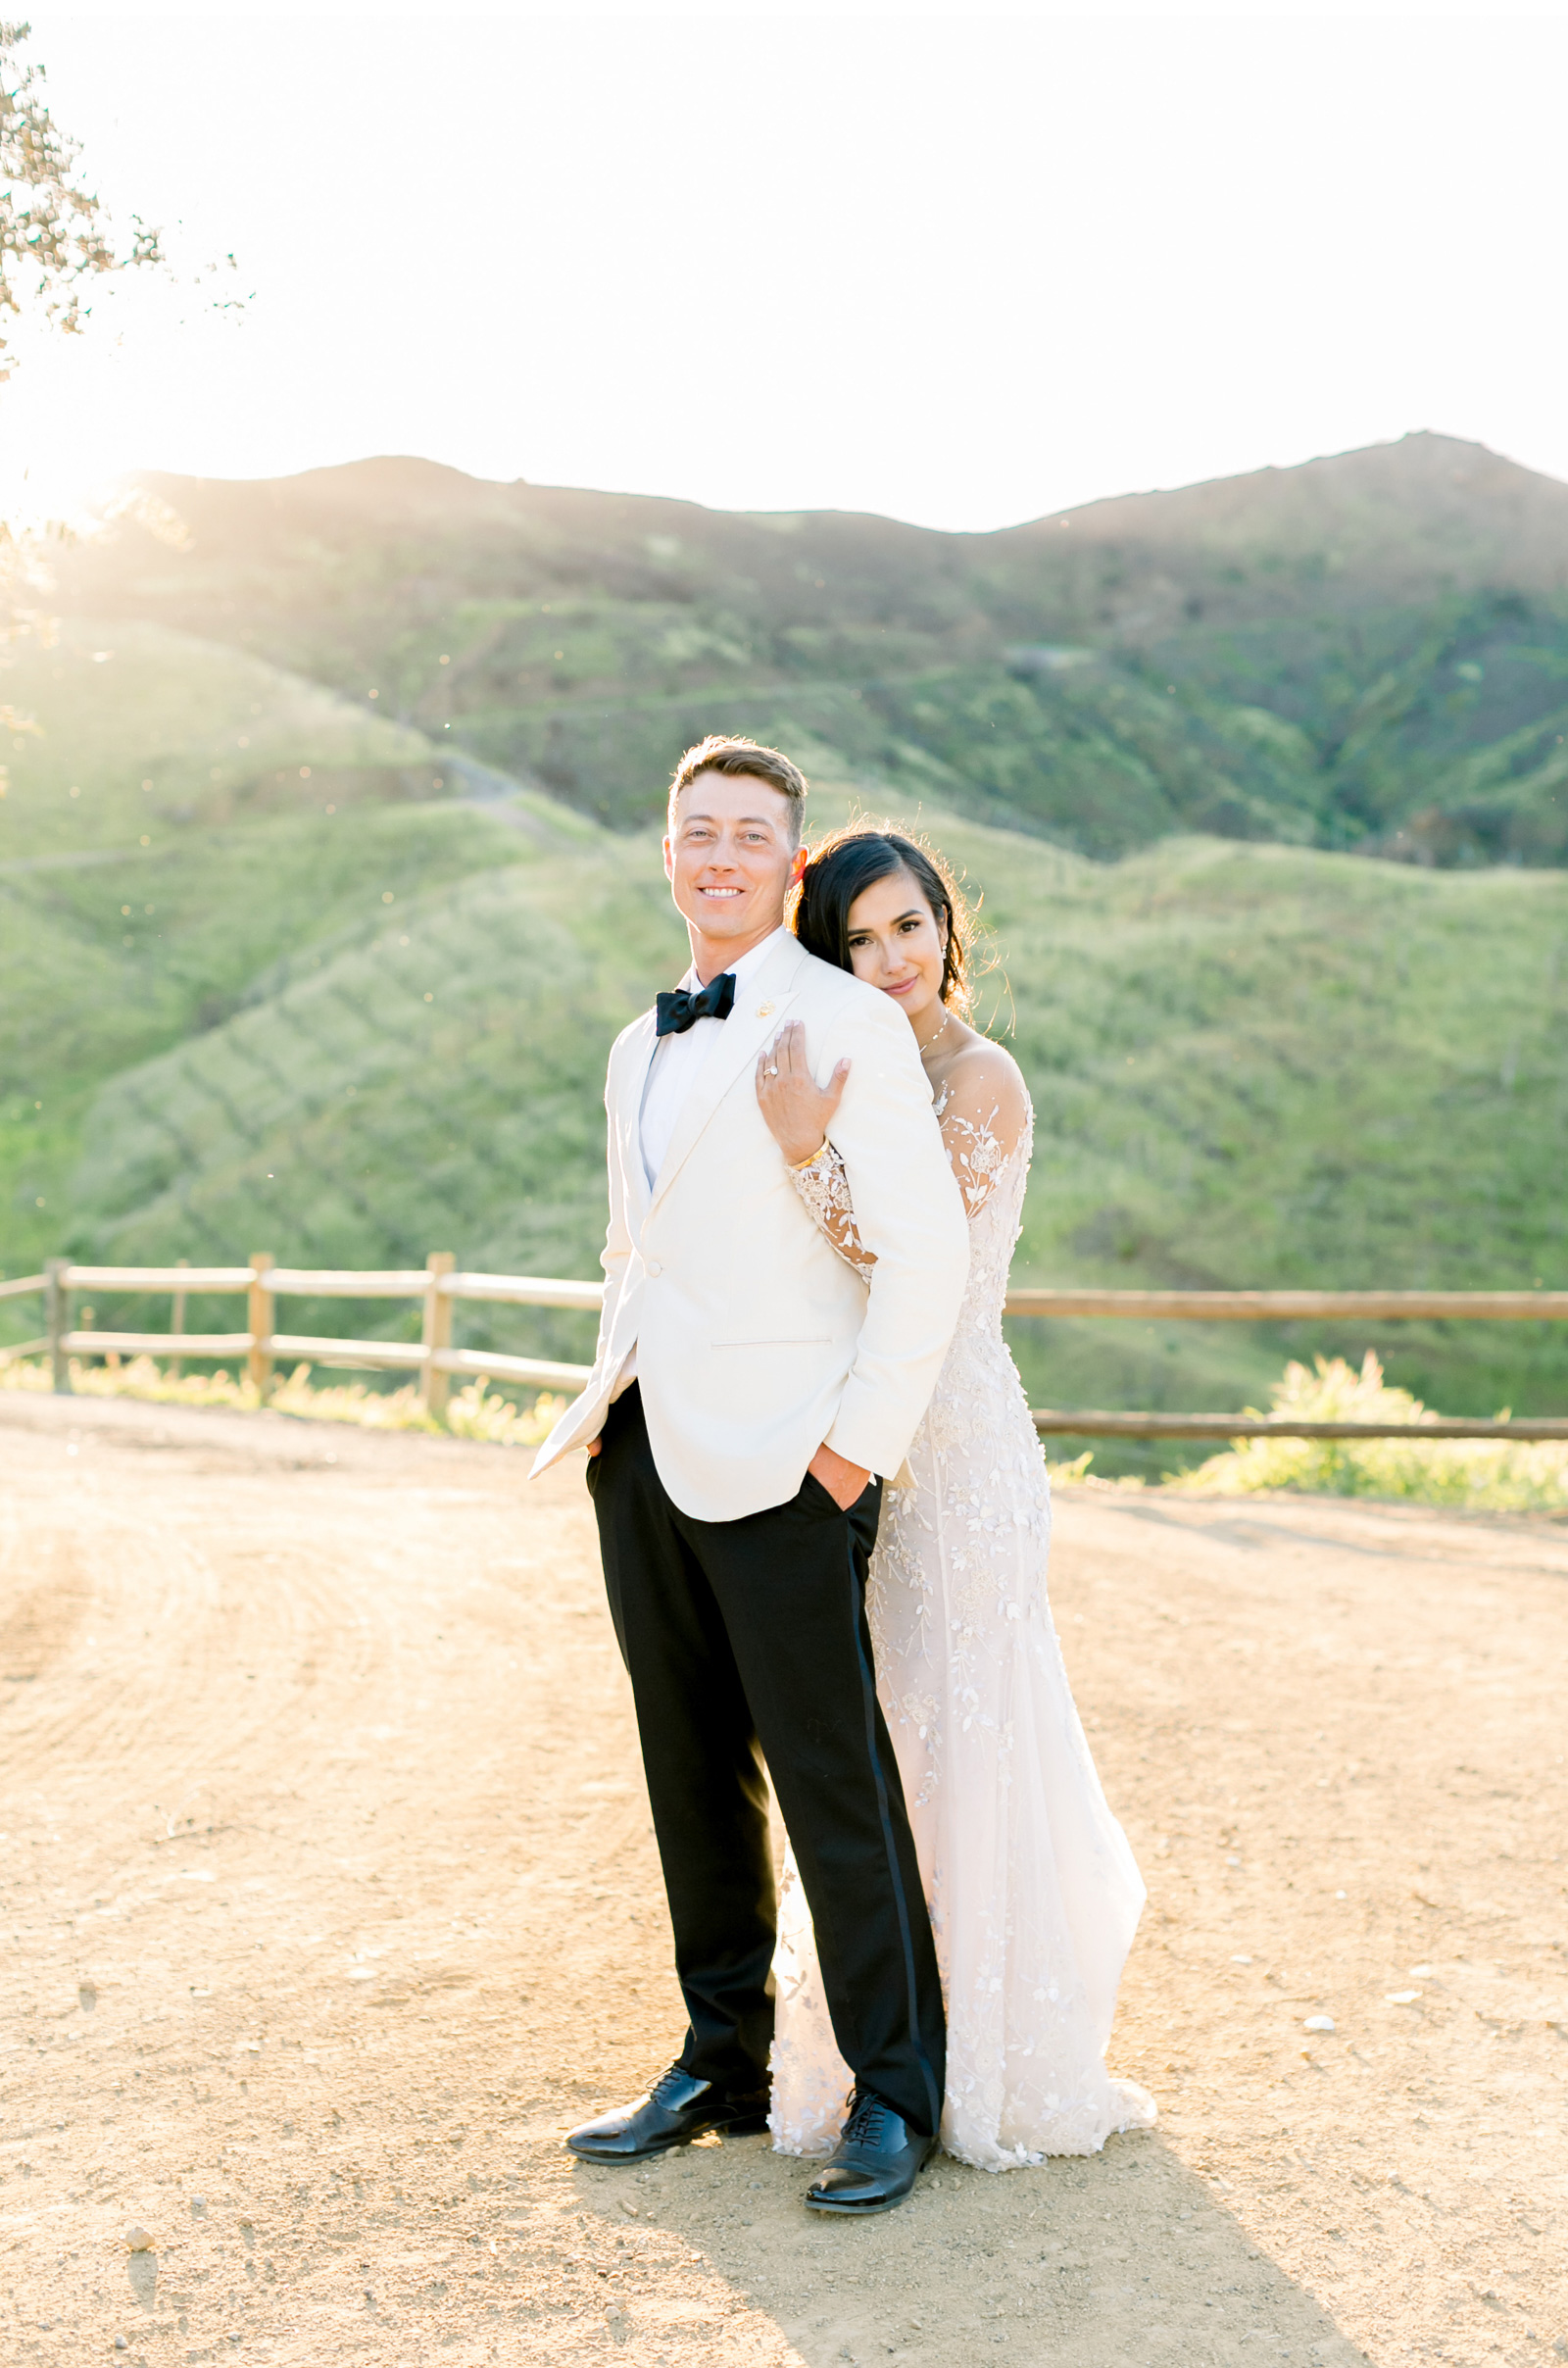 Malibu-Wedding-Photographer-Southern-California-Wedding-Venues-Malibu-Wedding-Photographer-Natalie-Schutt-Photography_05.jpg